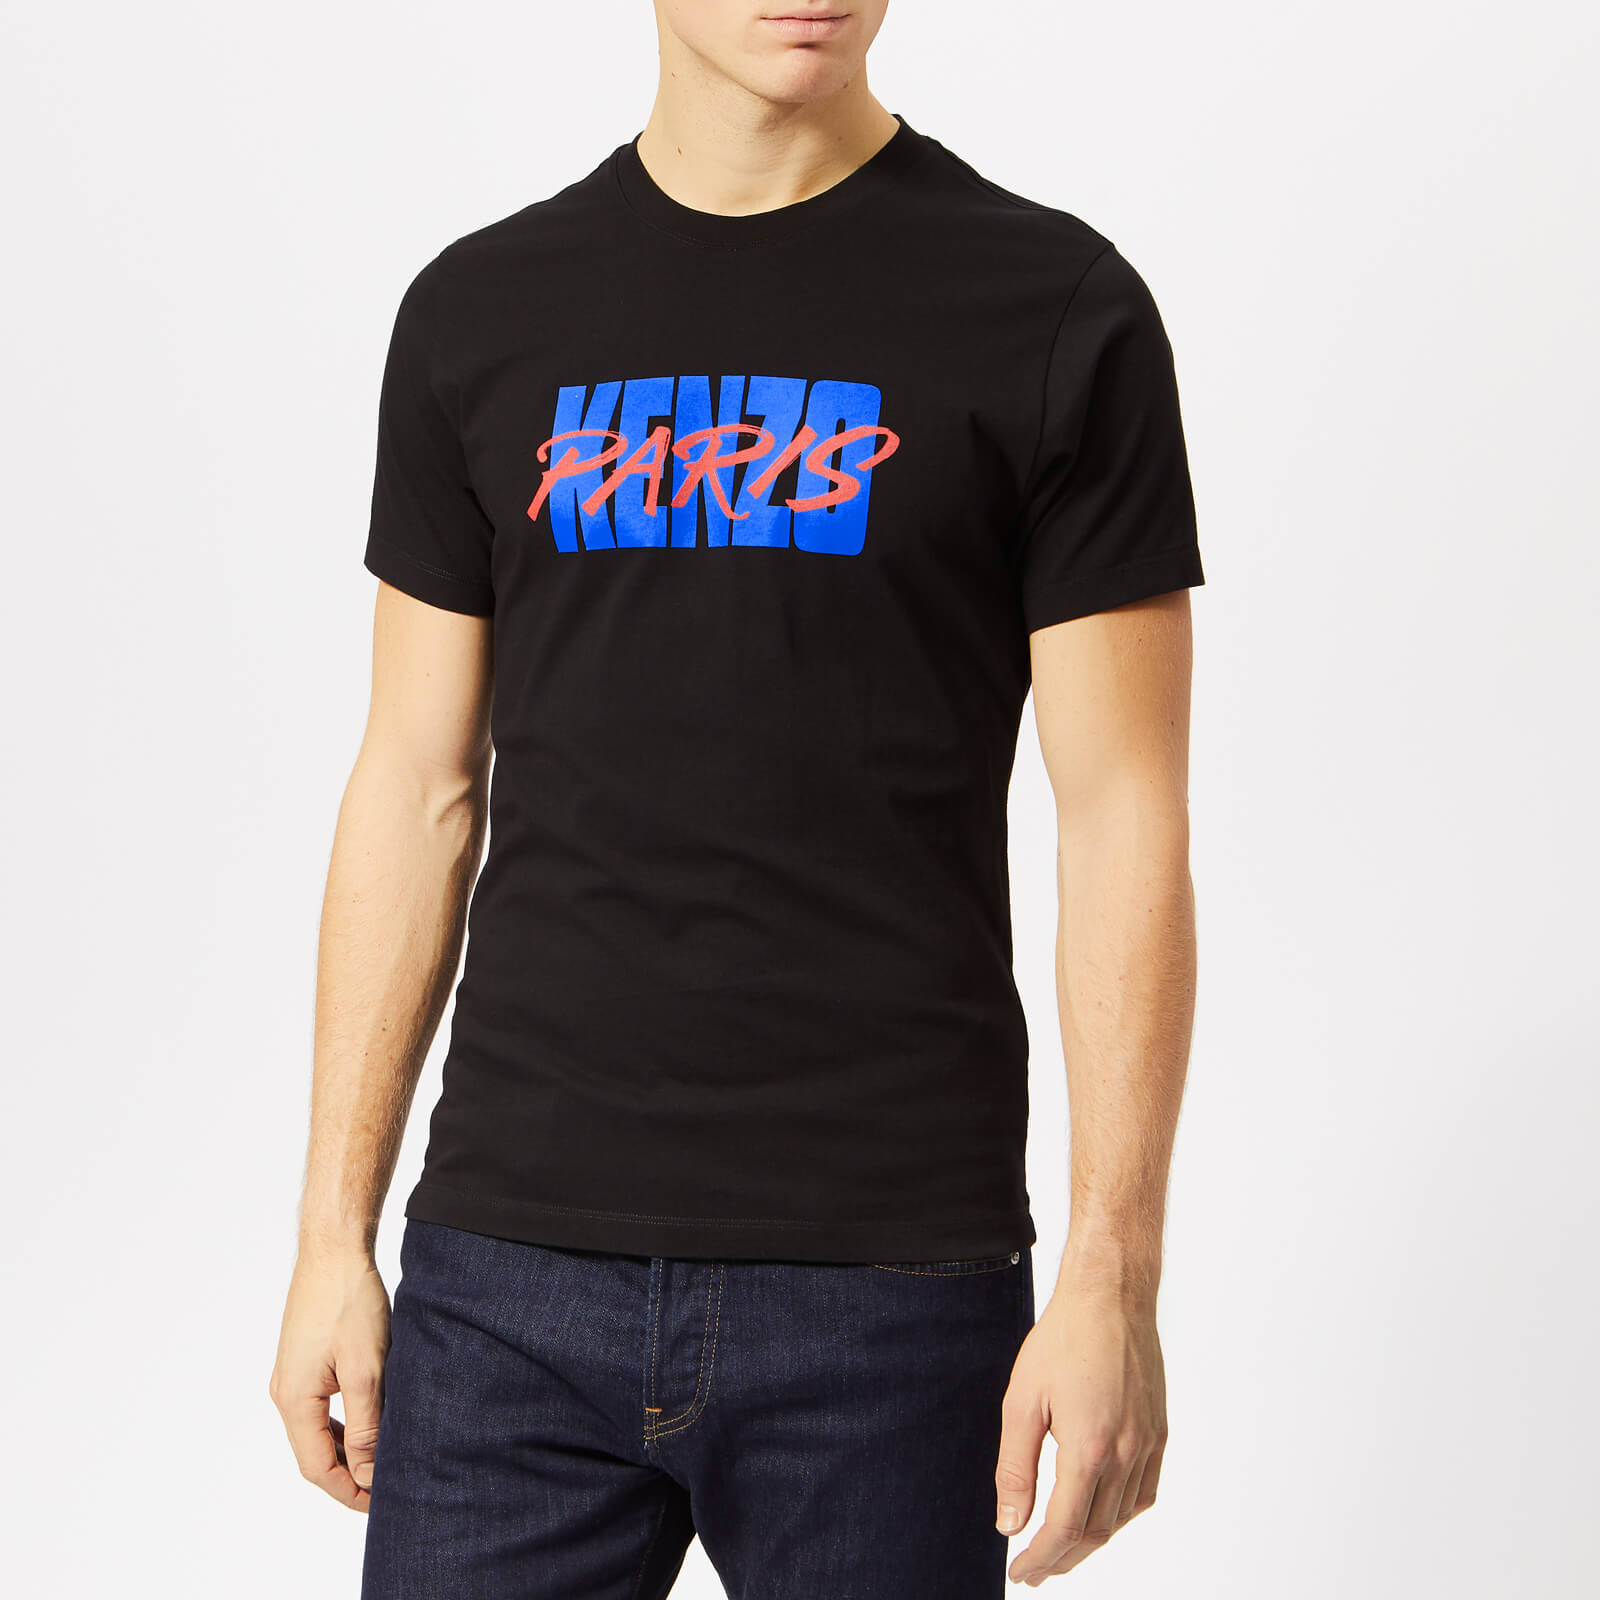 be176eab05b3 KENZO Men s Paris Logo T-Shirt - Black - Free UK Delivery over £50